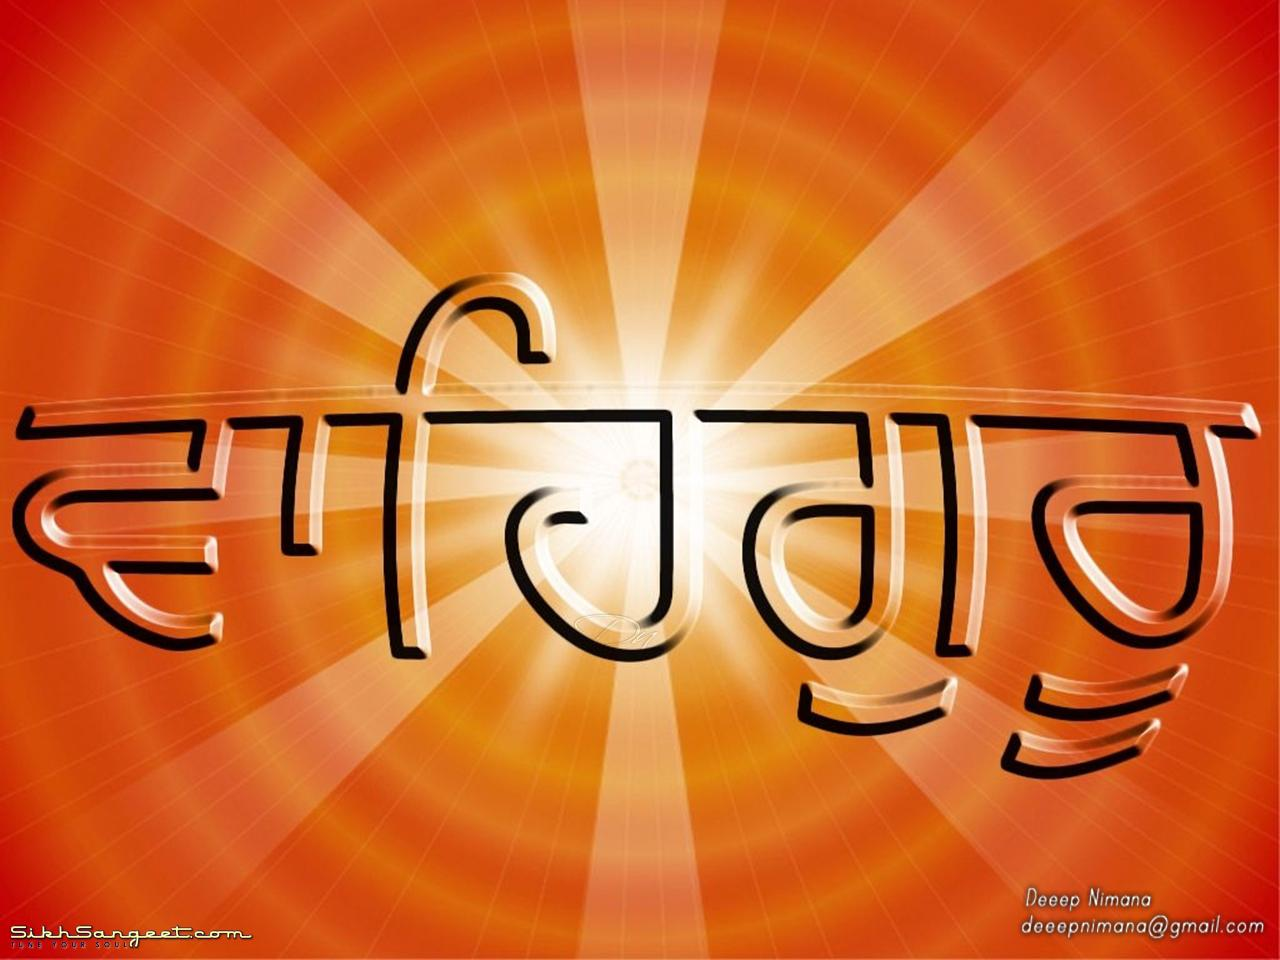 Sanskrit Of The Vedas Vs Modern Sanskrit: Waheguru Images